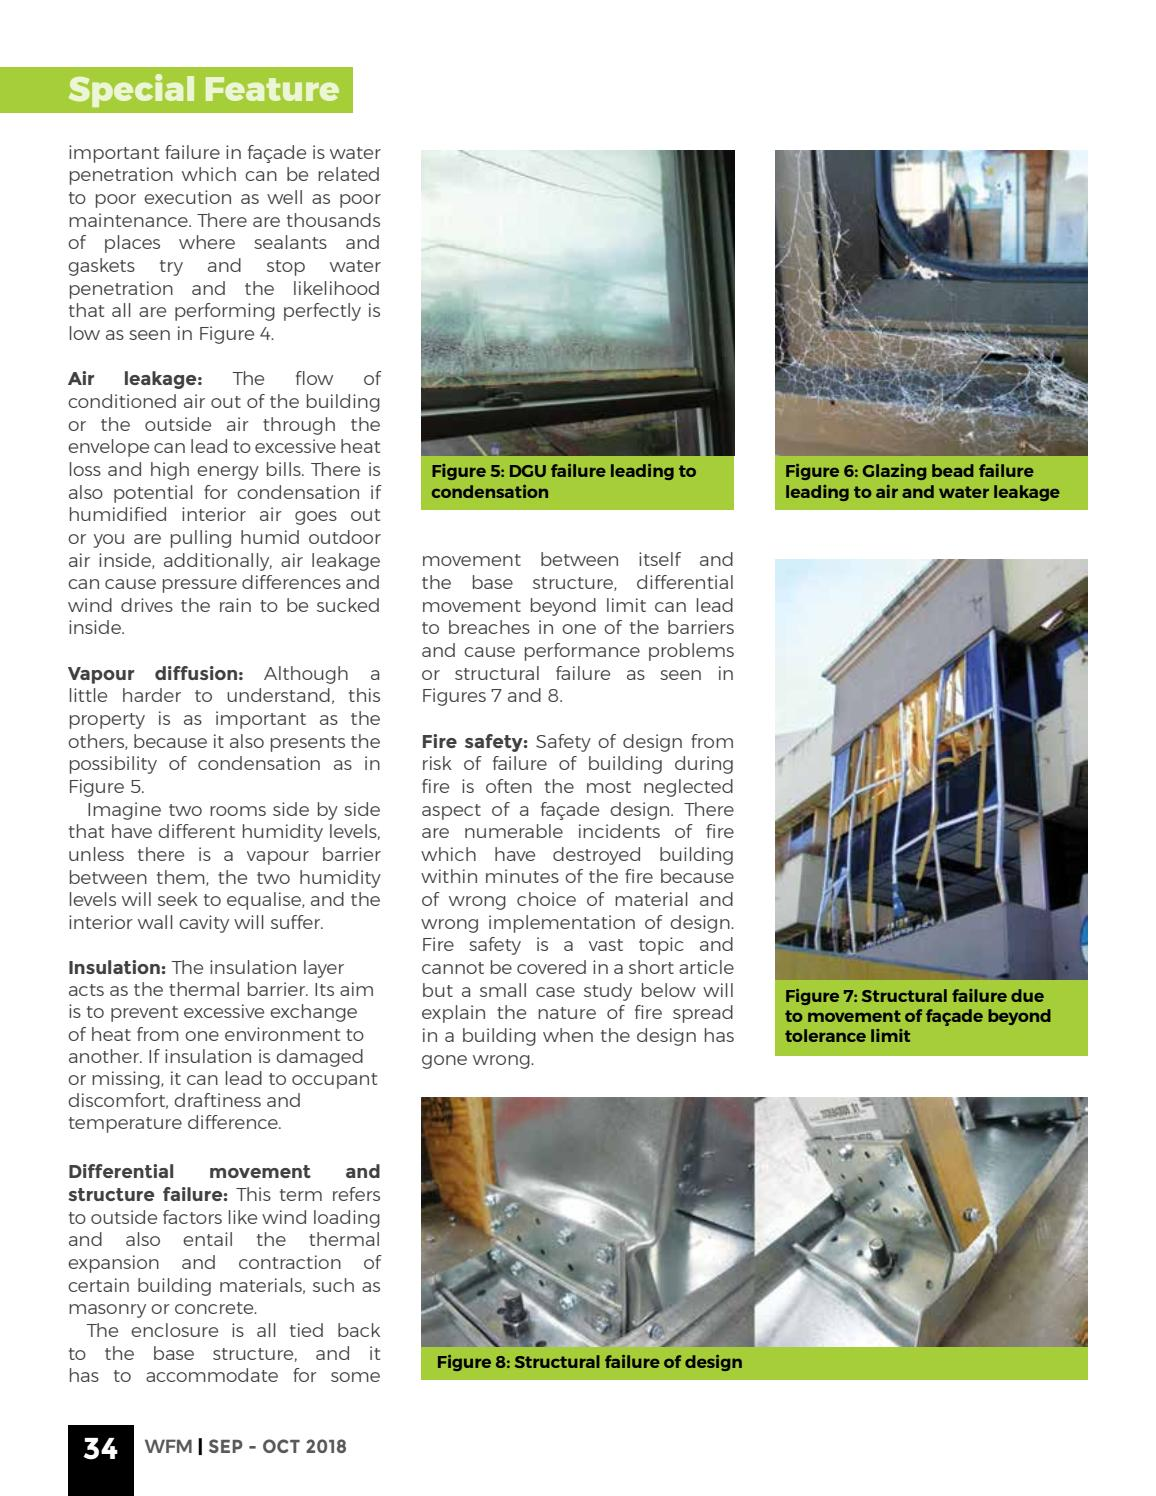 Window & Facade Magazine - Sep/Oct 2018 issue by F & F Media